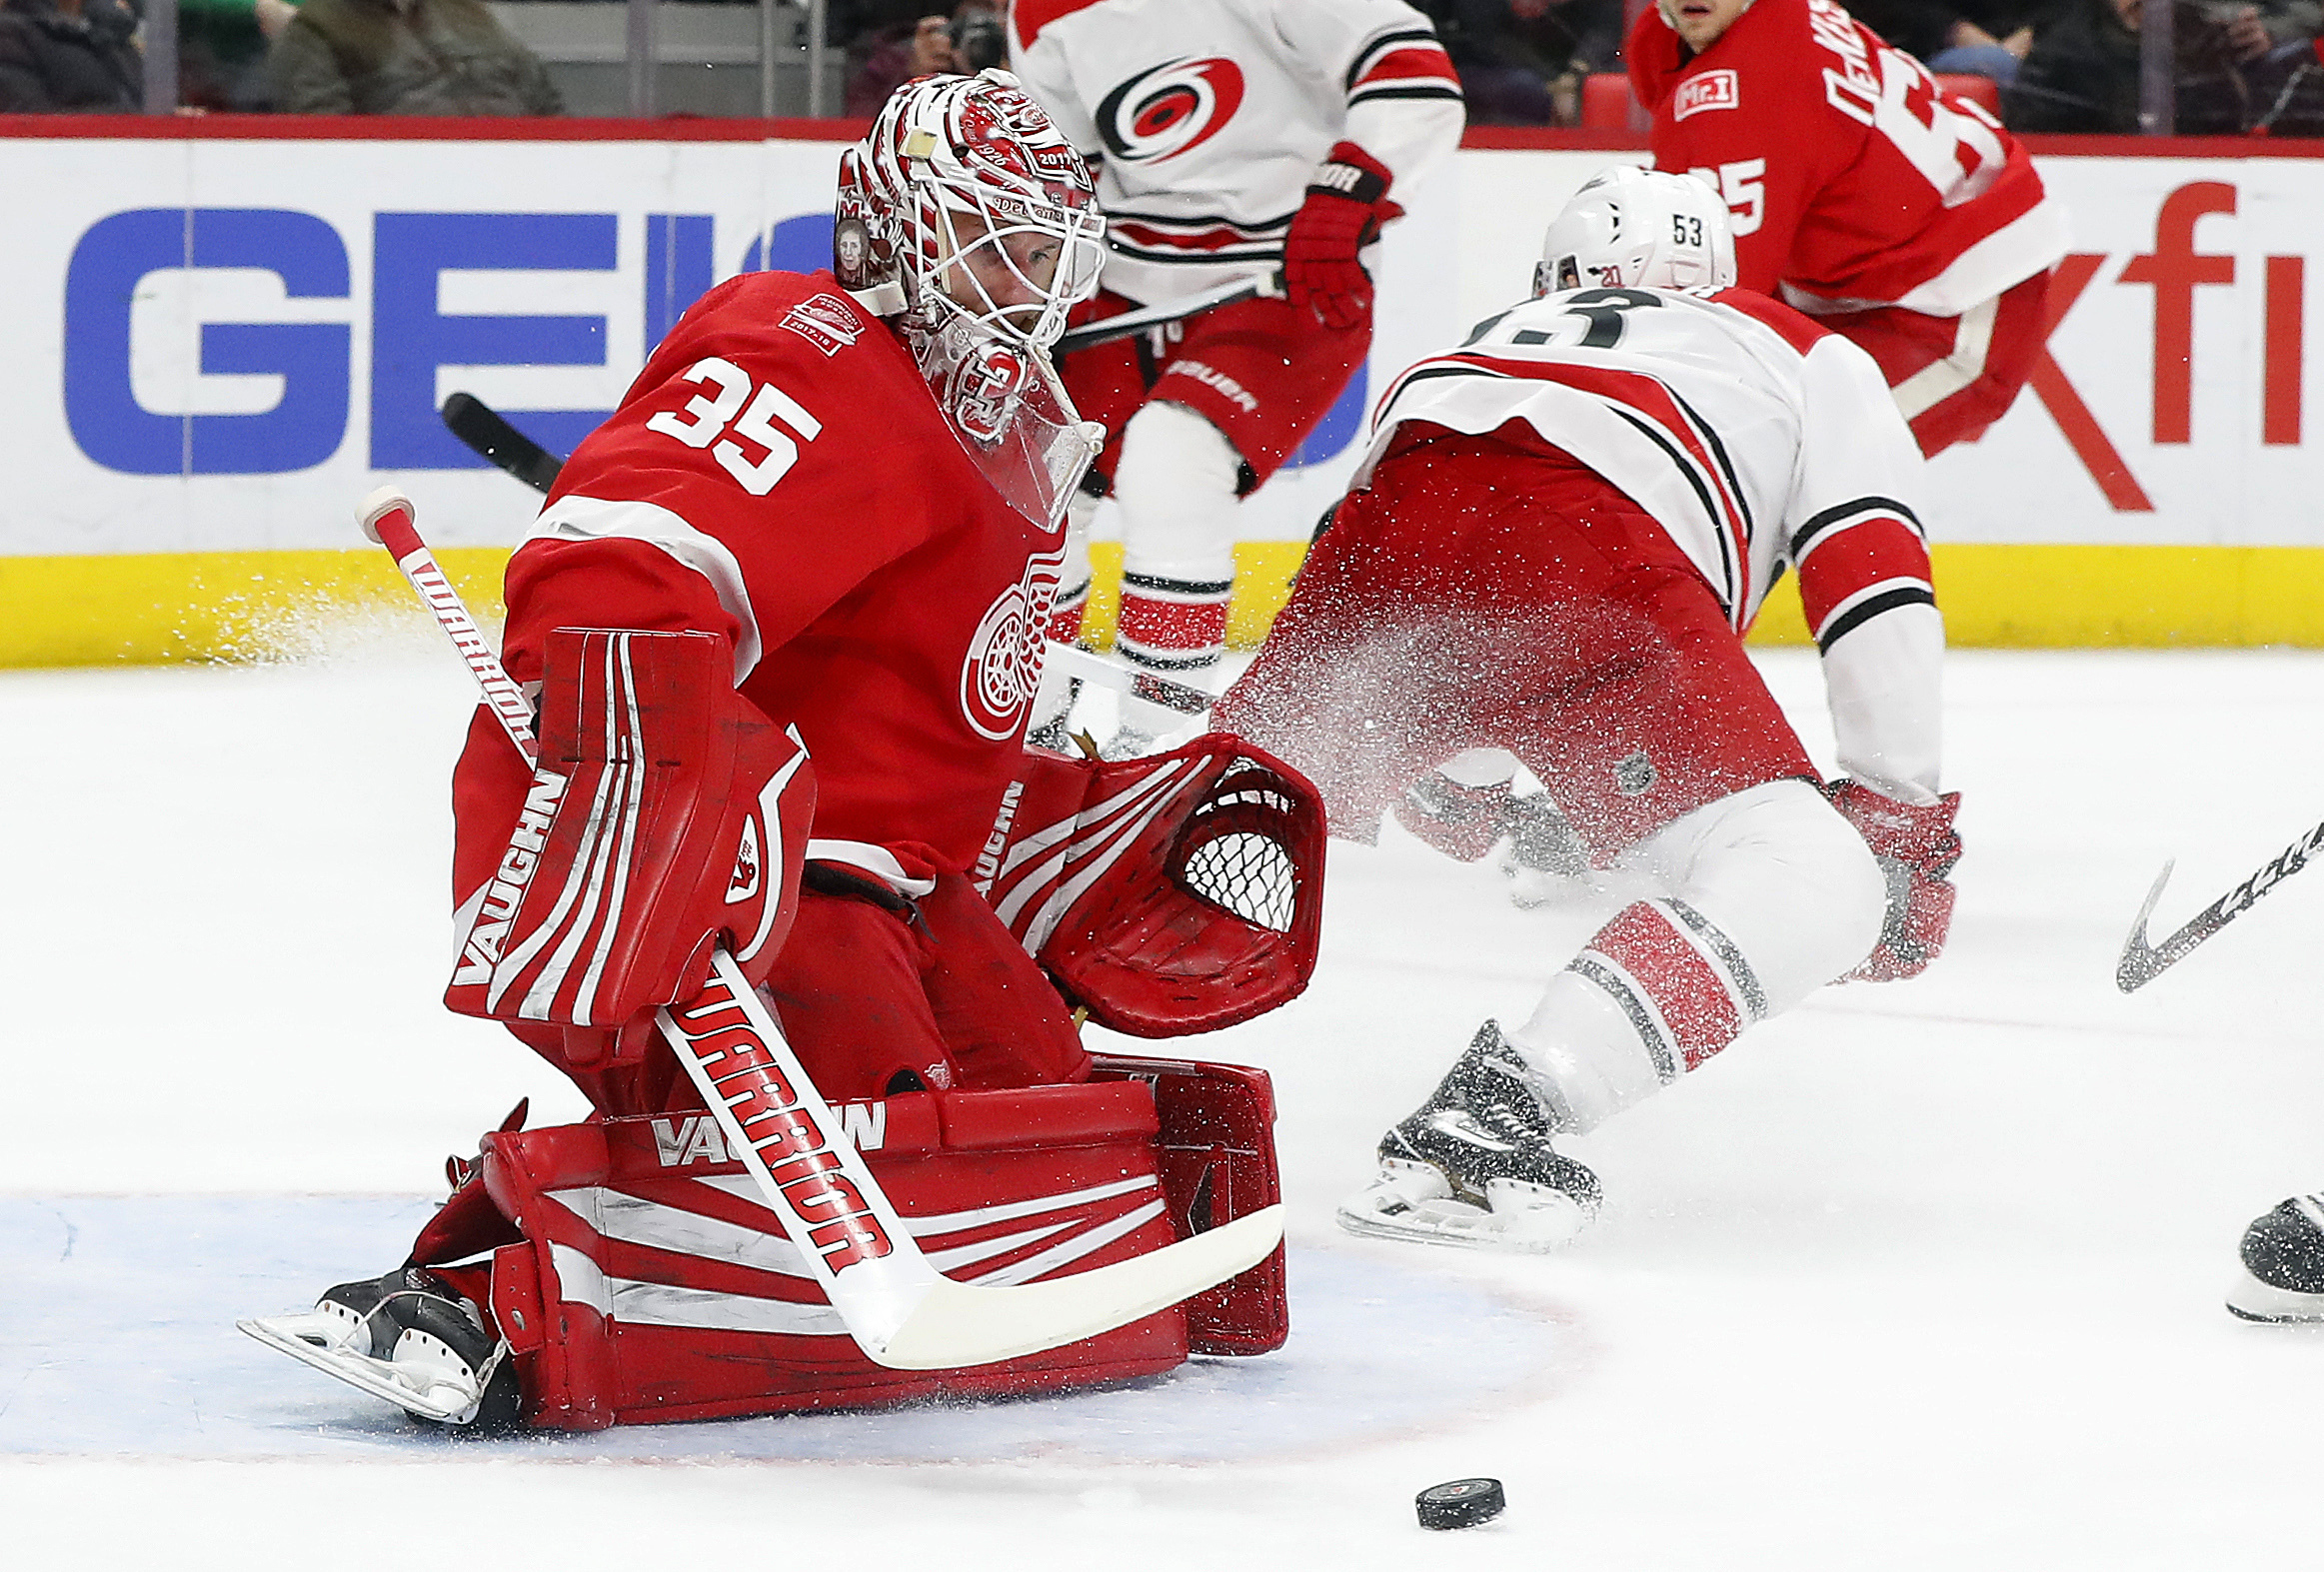 Hurricanes push past Red Wings in third period - The Blade